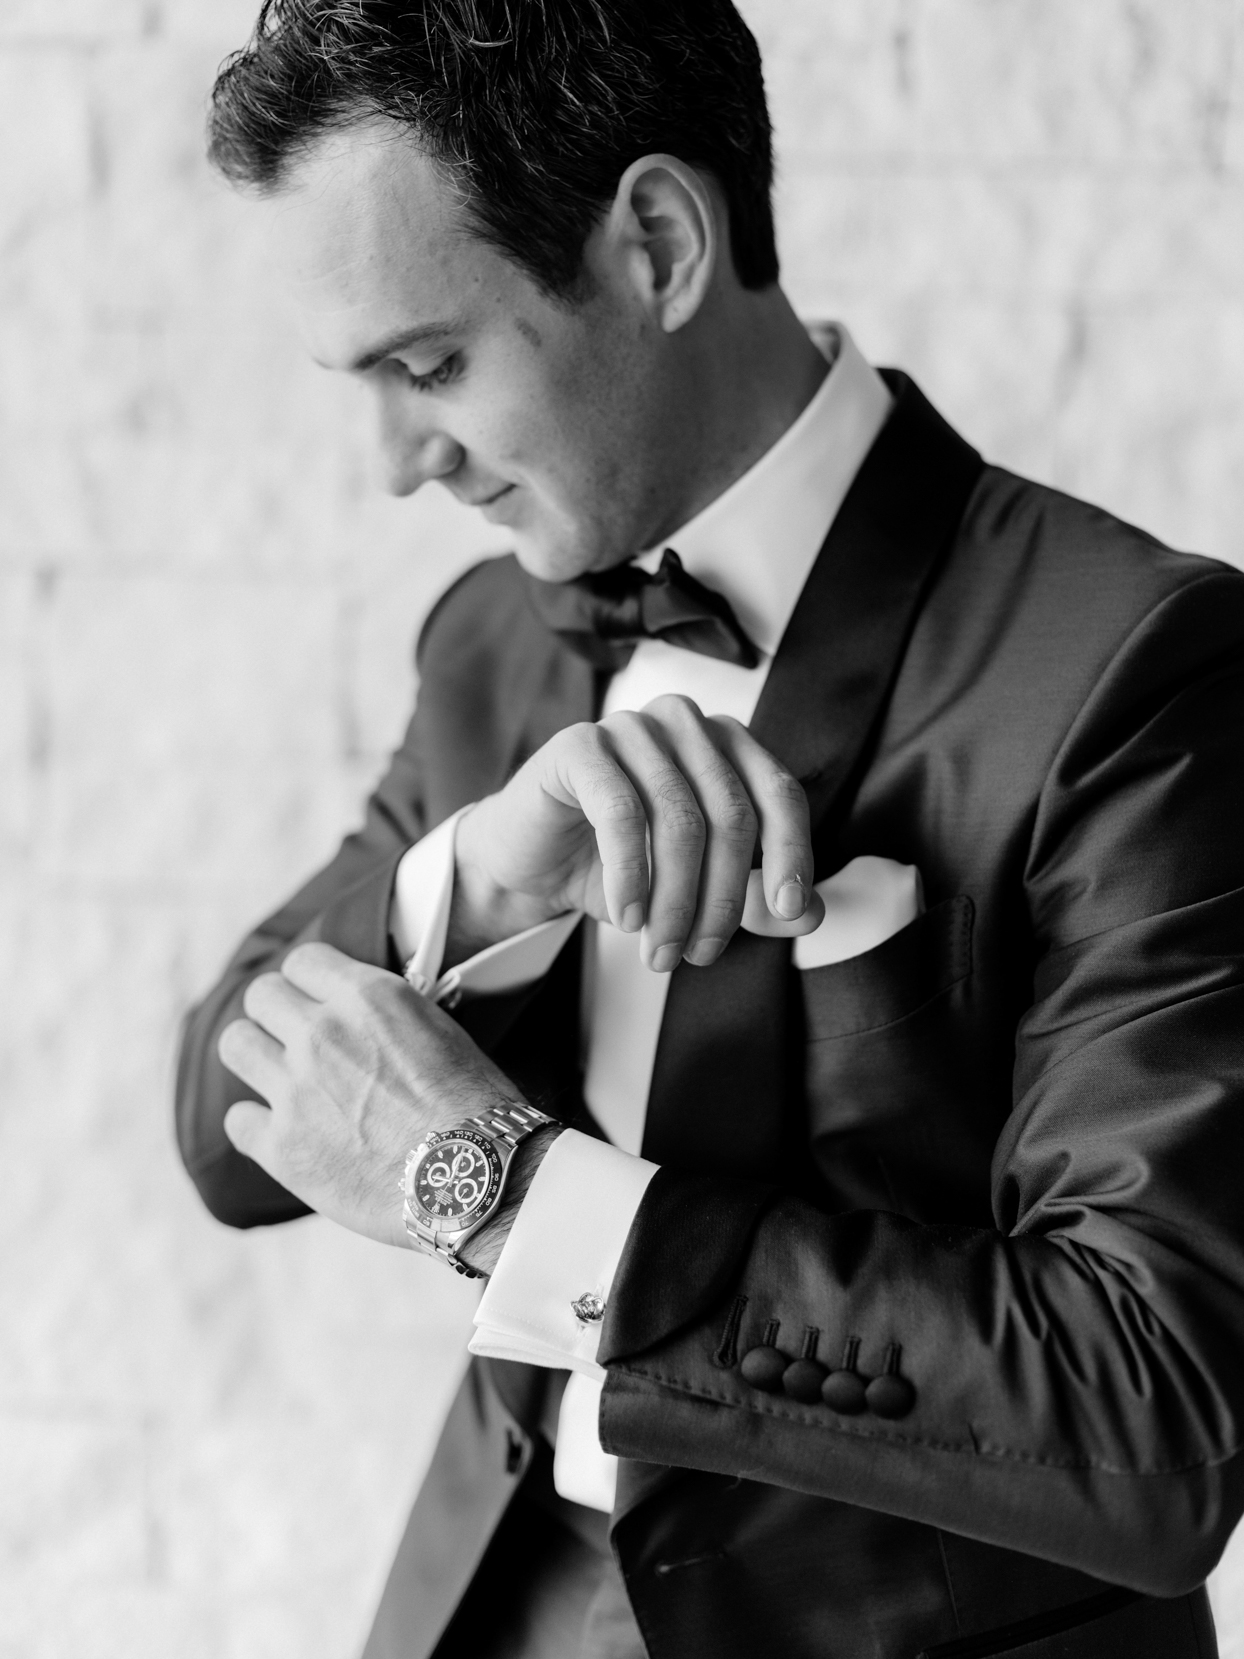 groom getting ready wearing watch and suit with bowtie